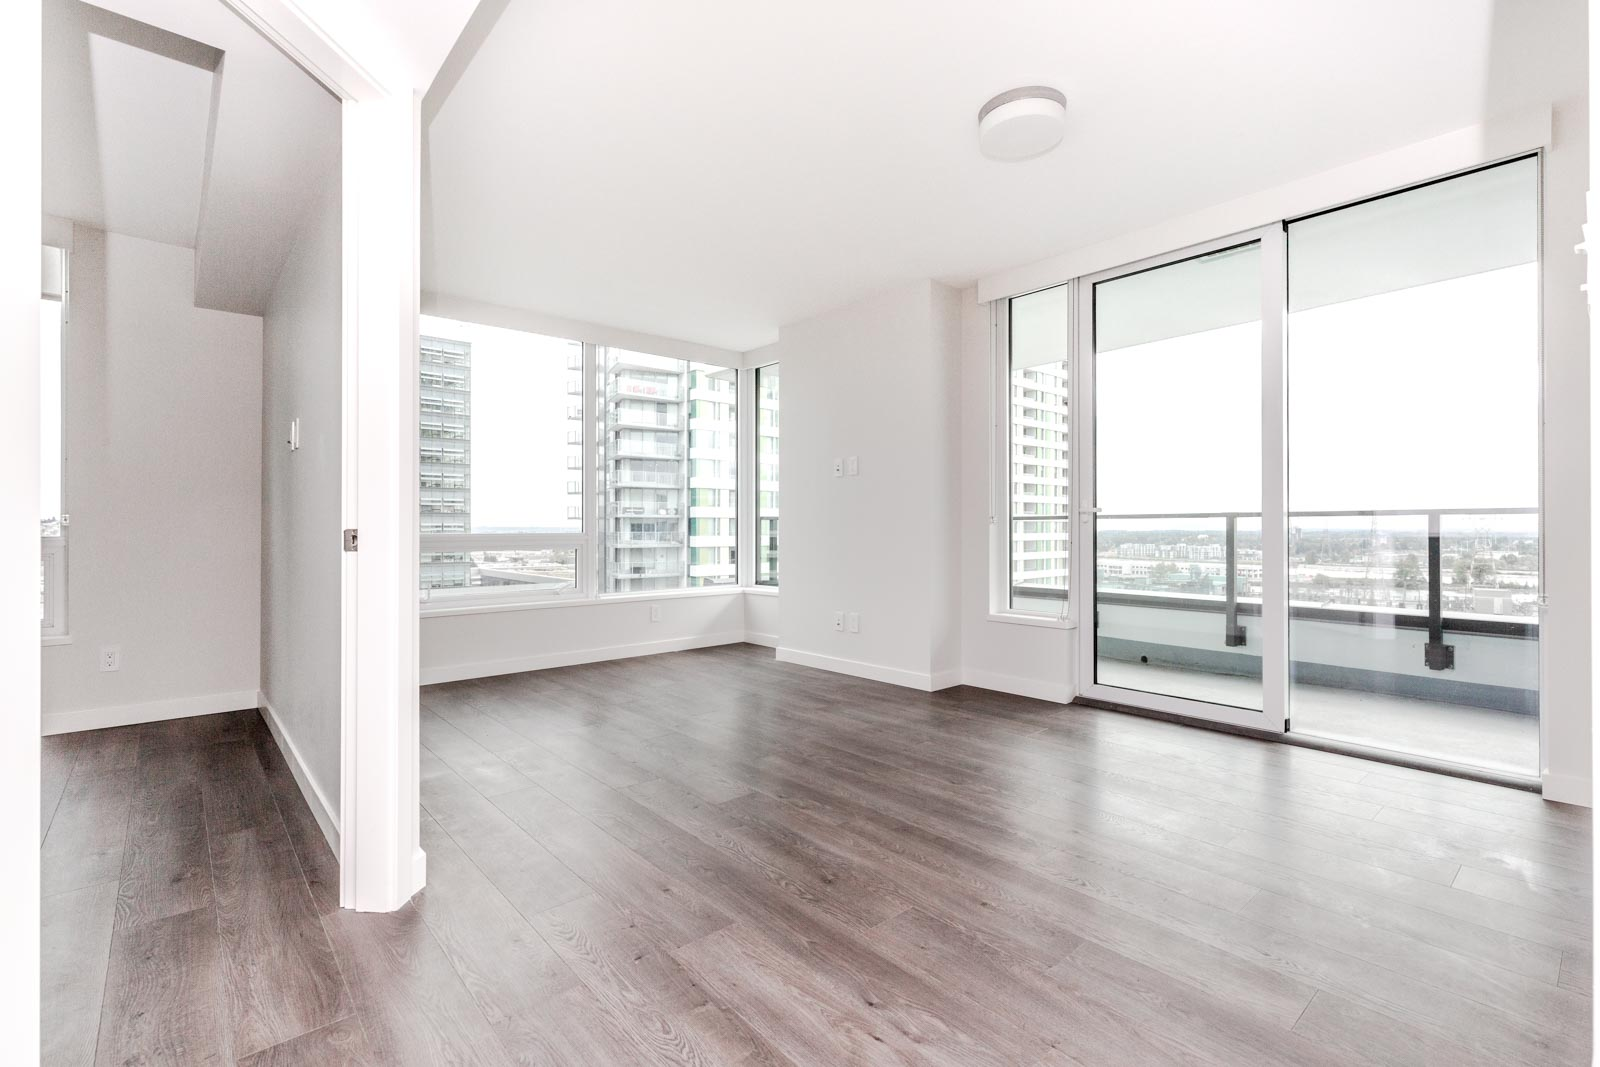 Living area of Vancouver luxury rental condo with view.